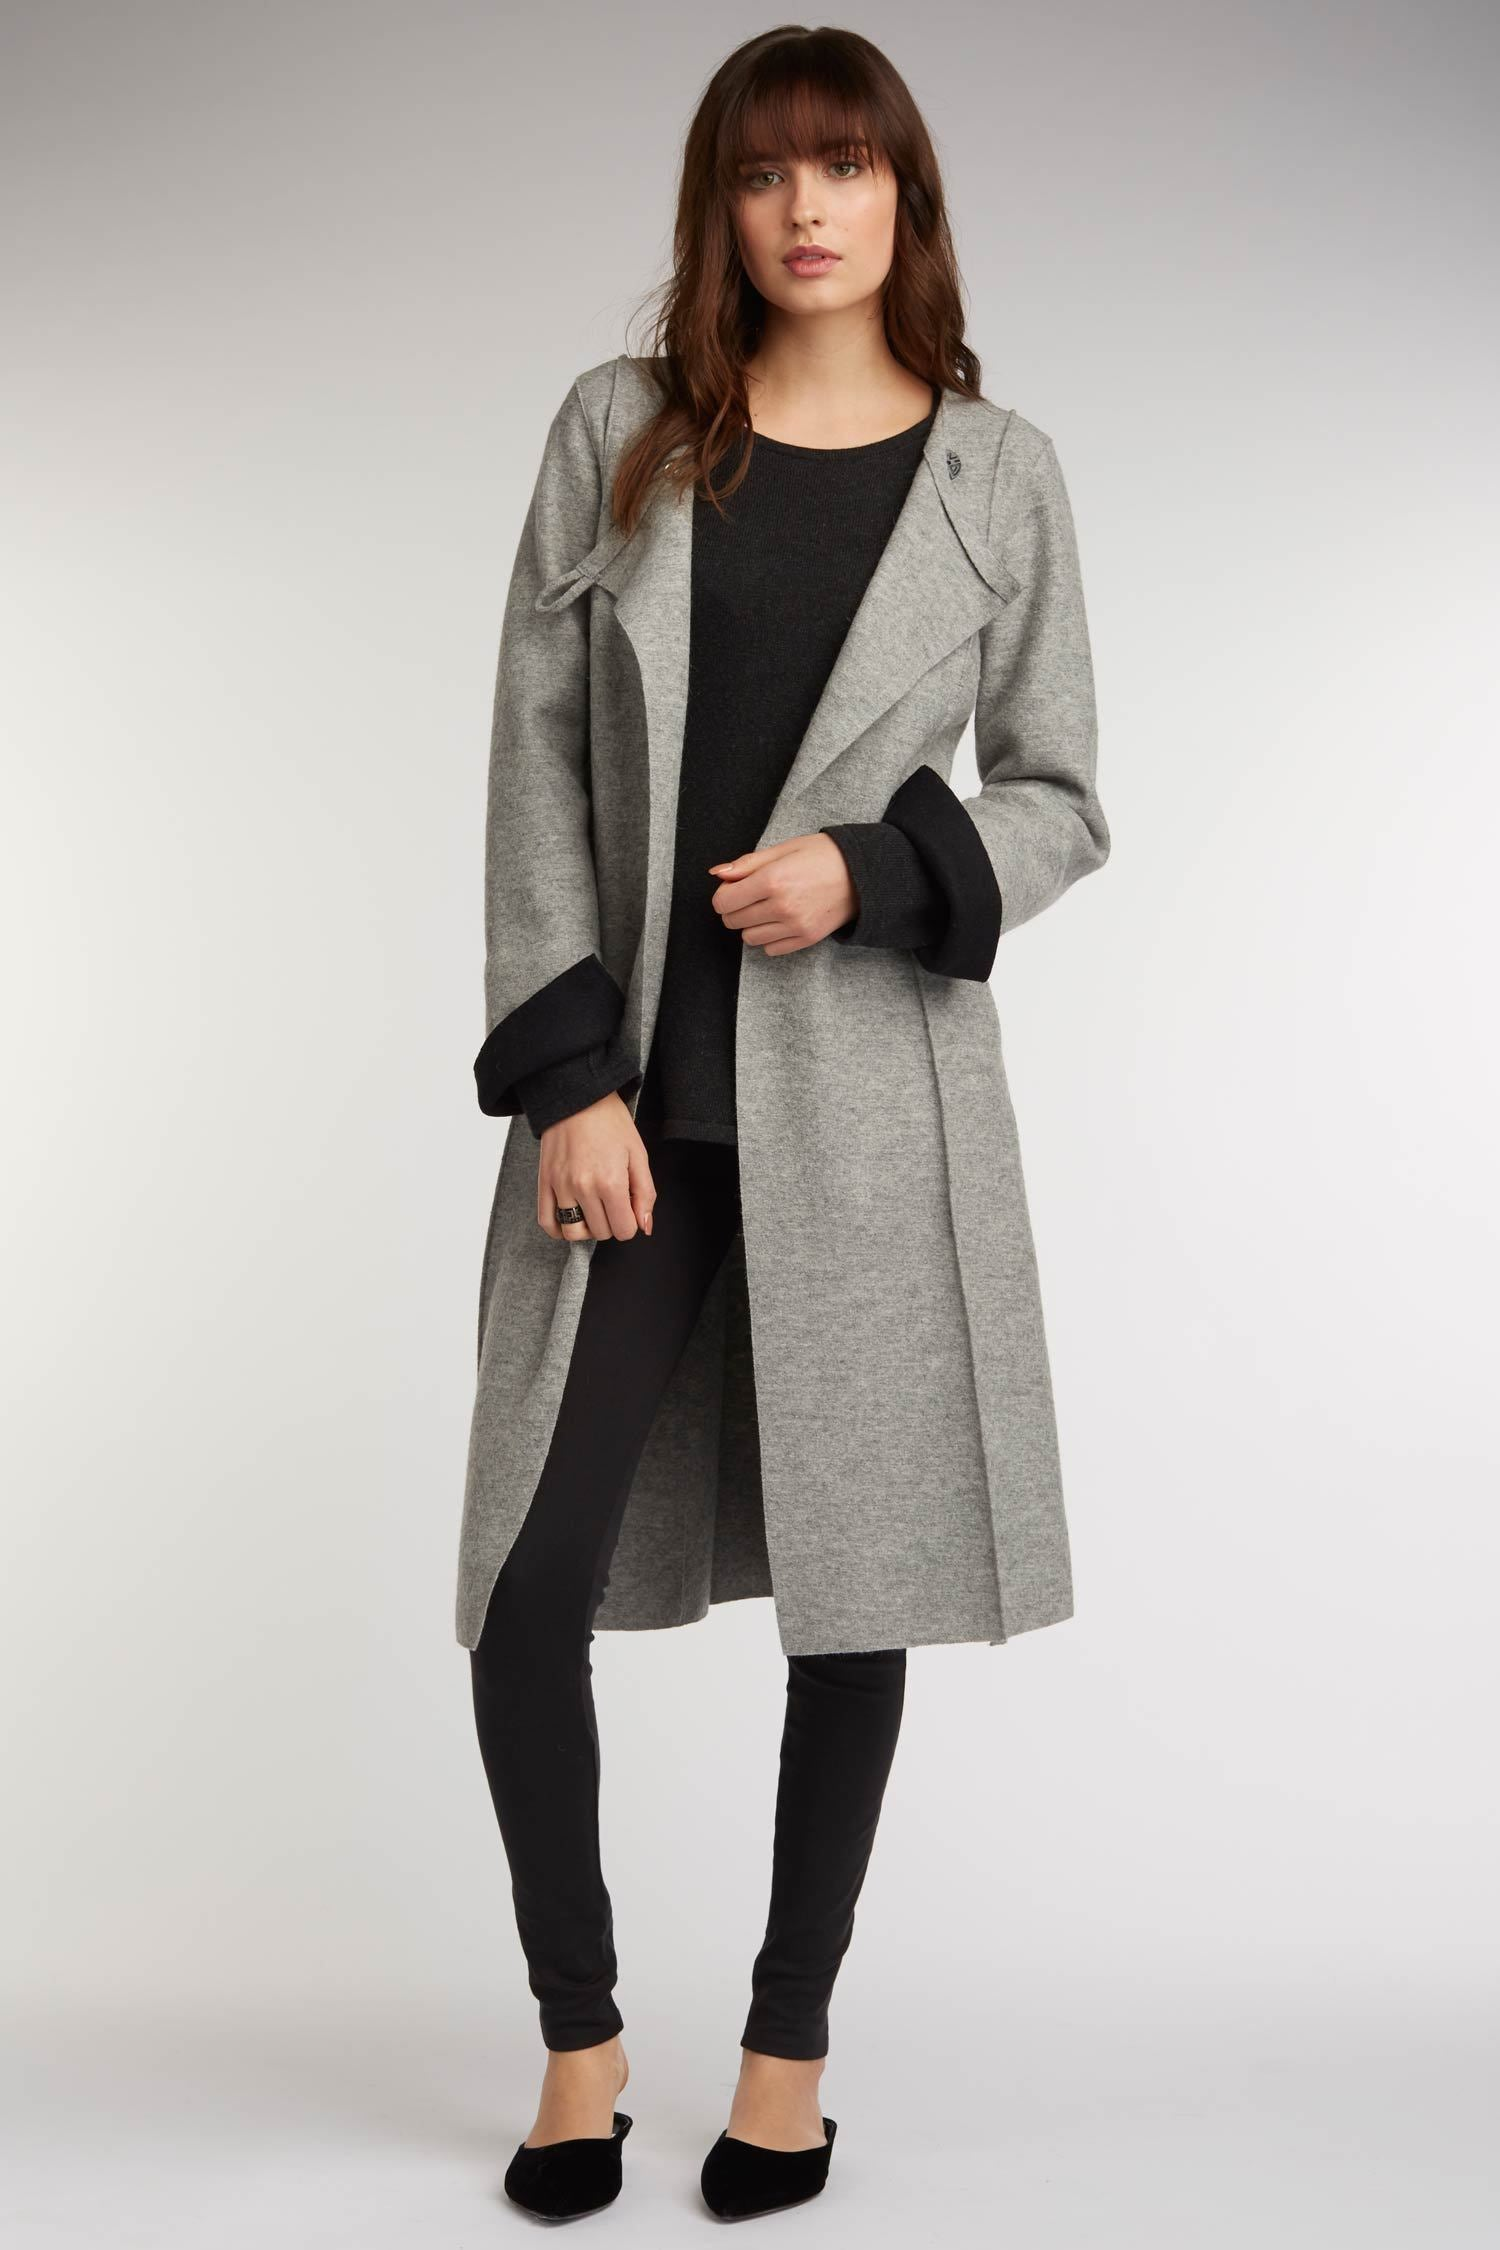 2d724bf523c Womens Coats - Boiled Wool Long Alpaca Coat - Sustainable Fashion ...